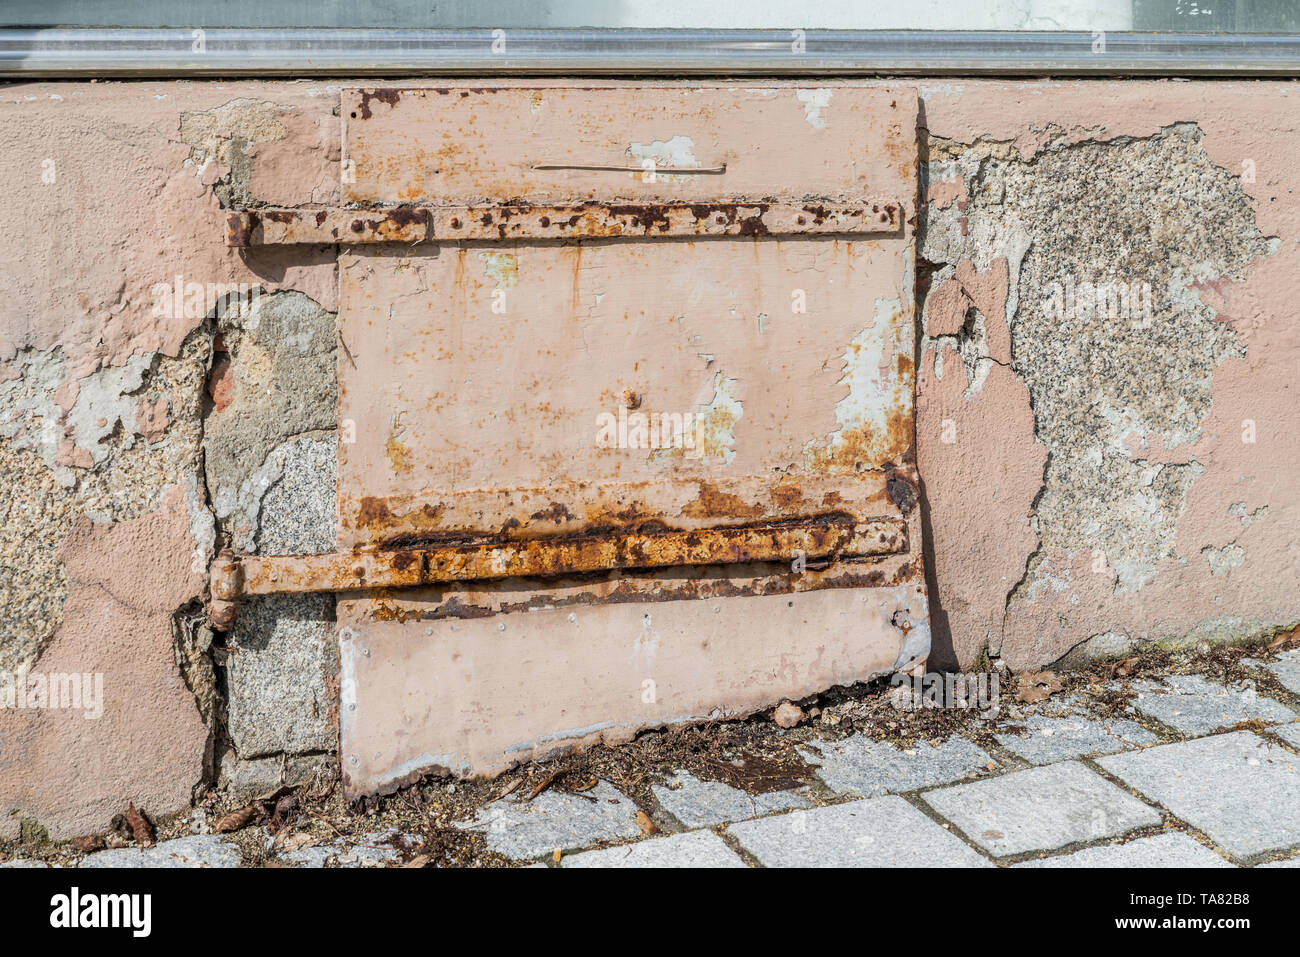 Old damaged rusty iron flap of a coal shaft at a house wall, Germany - Stock Image